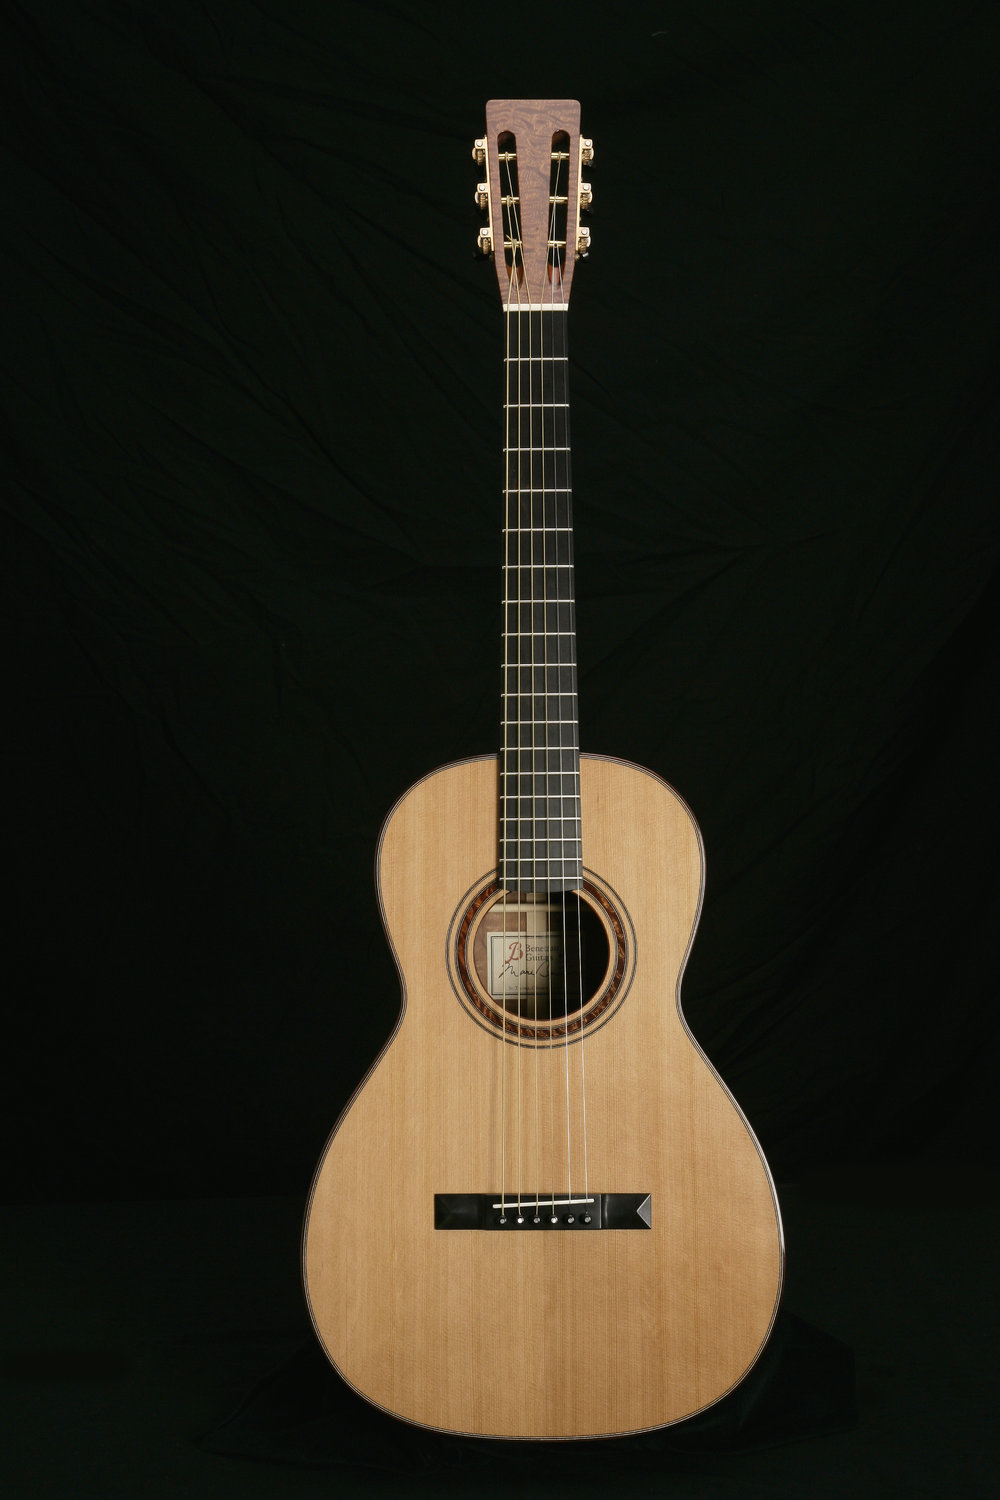 Models Hidden Beneteau Guitars Fret Gitar Jumbo 0 12 Parlor This Is The Quintessential Parlour Guitar